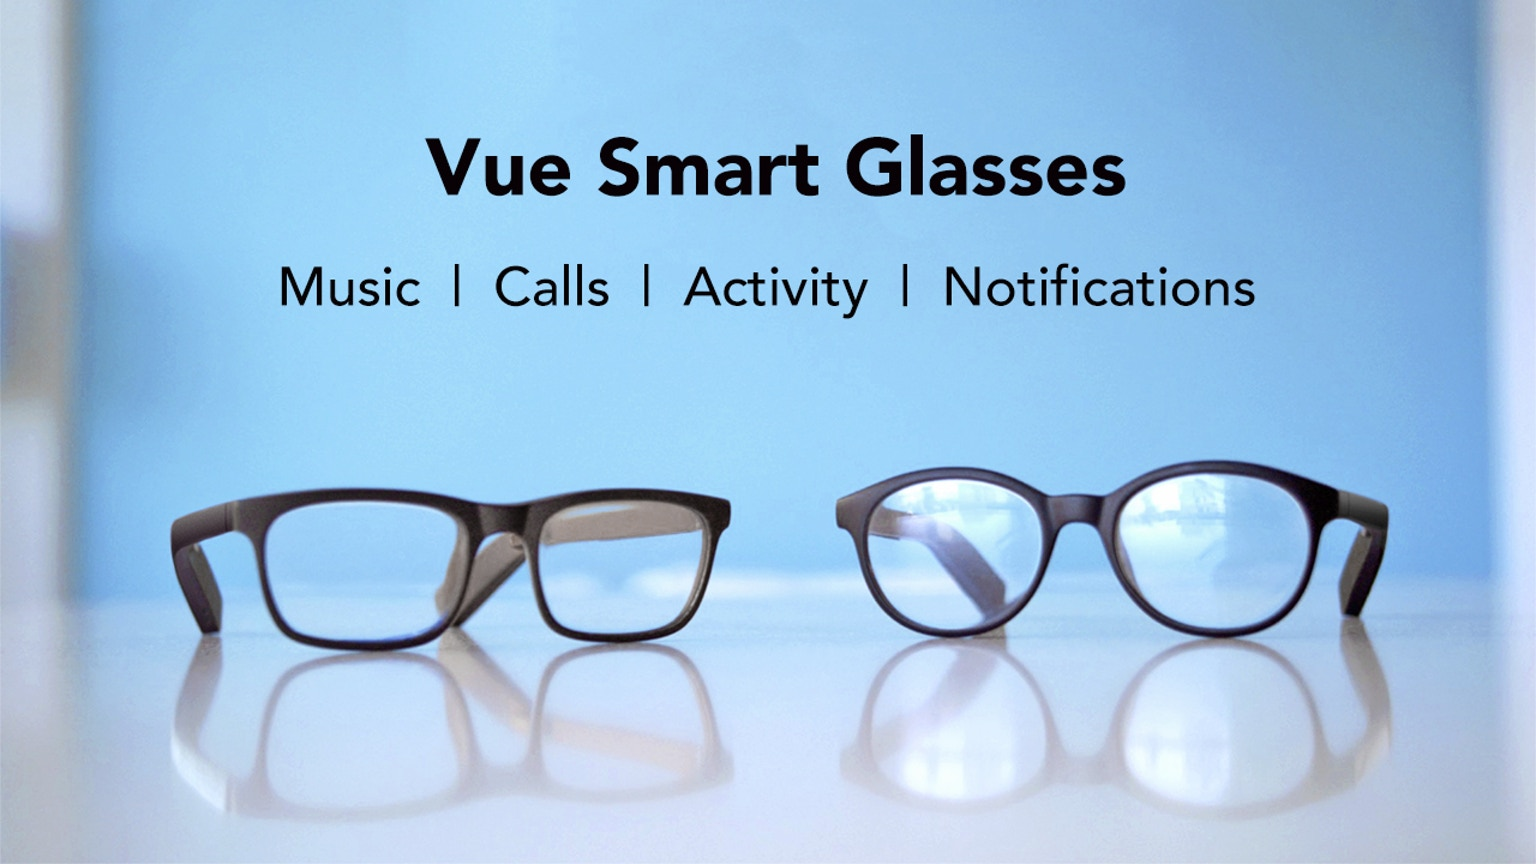 Vue is the world's first pair of smart glasses that are designed for everyday use. Offered in prescription, plano, and sunglasses.